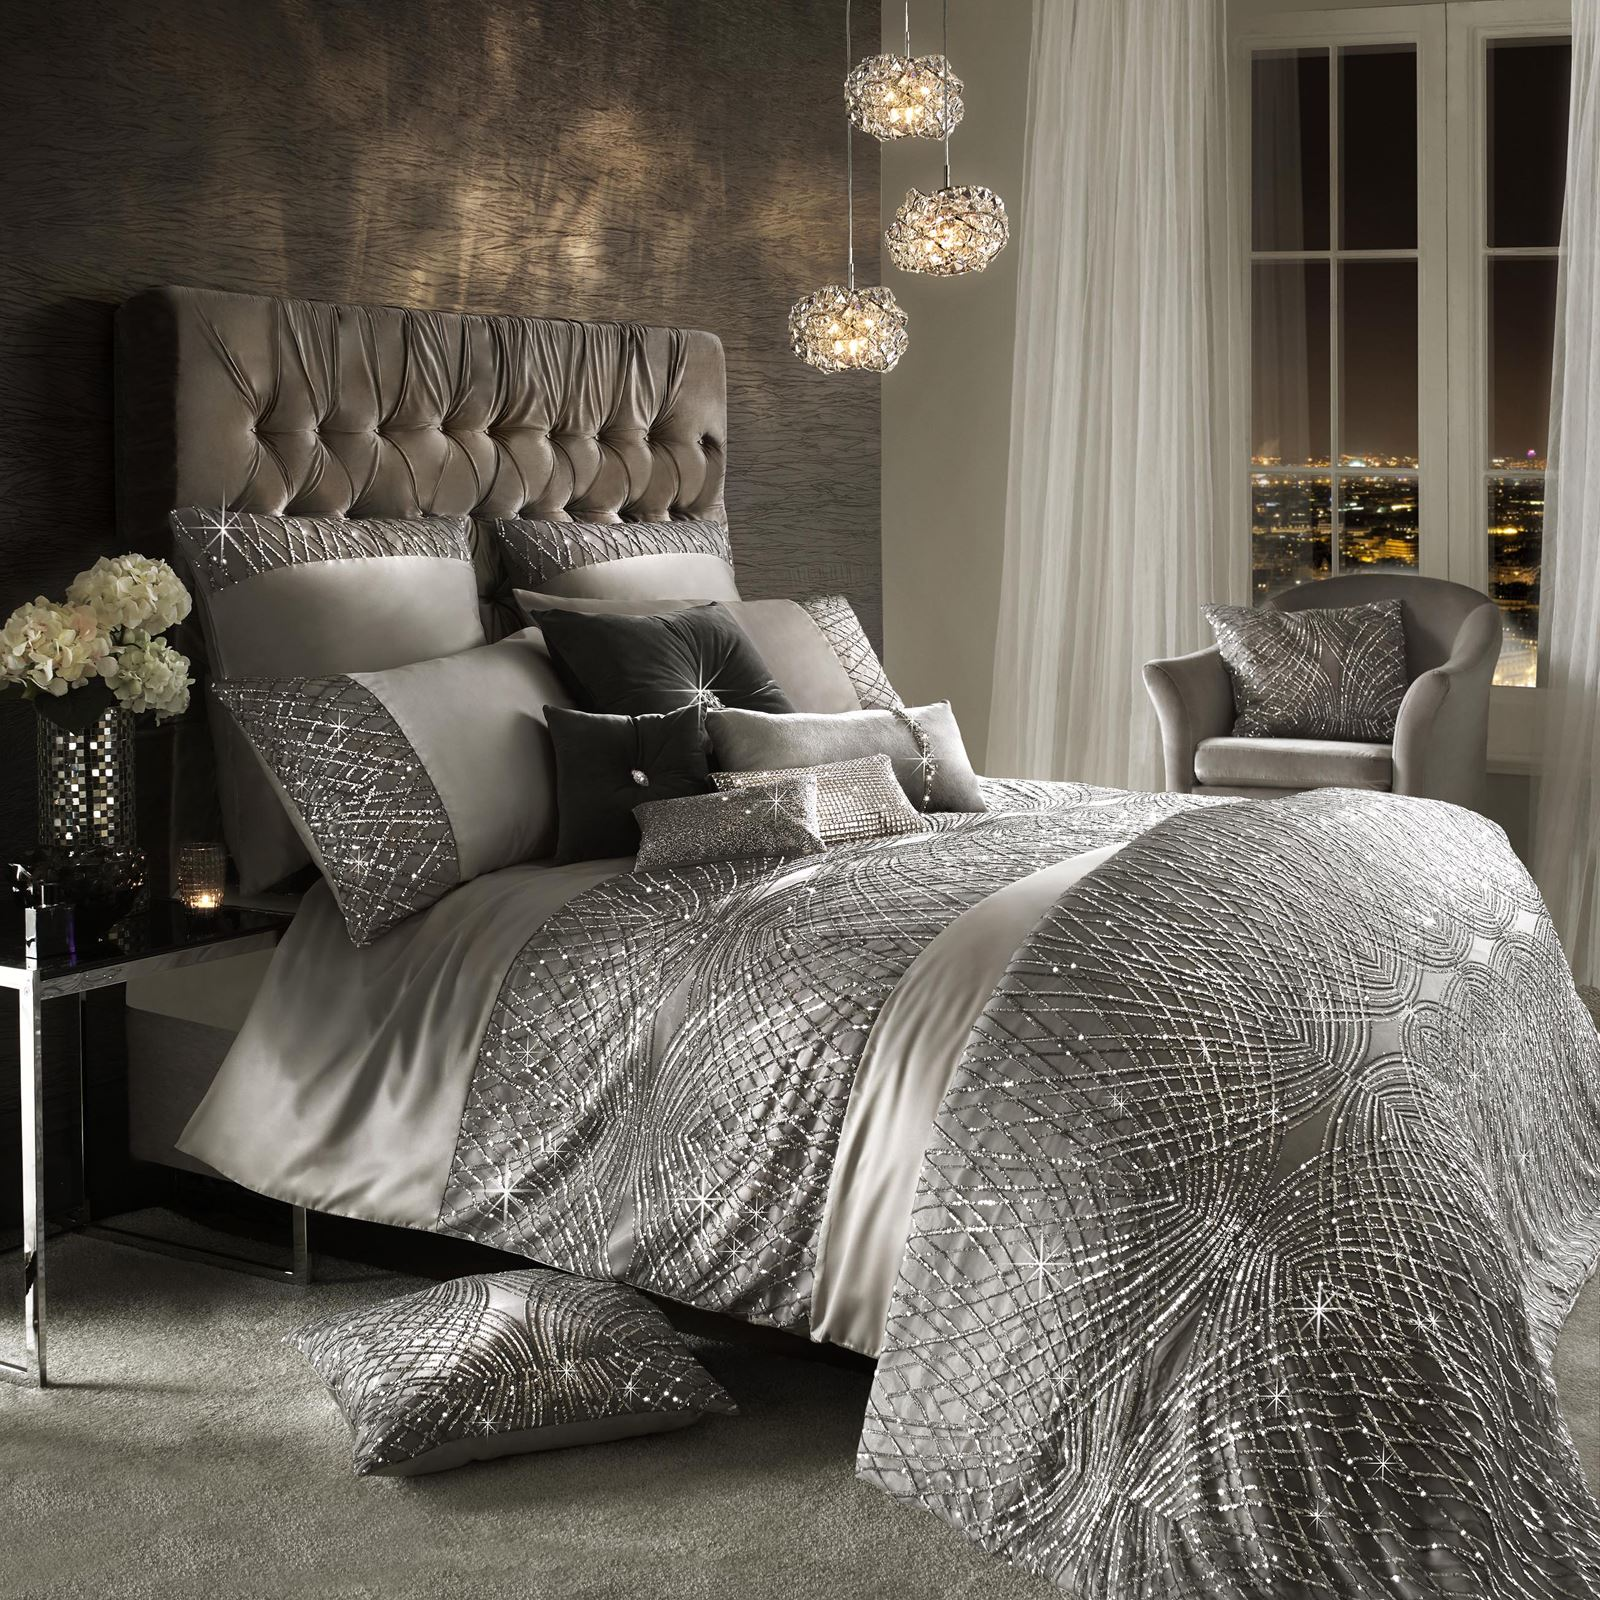 silver morning cover morningglory sham in bedding set glory products graphic inhabit closeup modern duvet